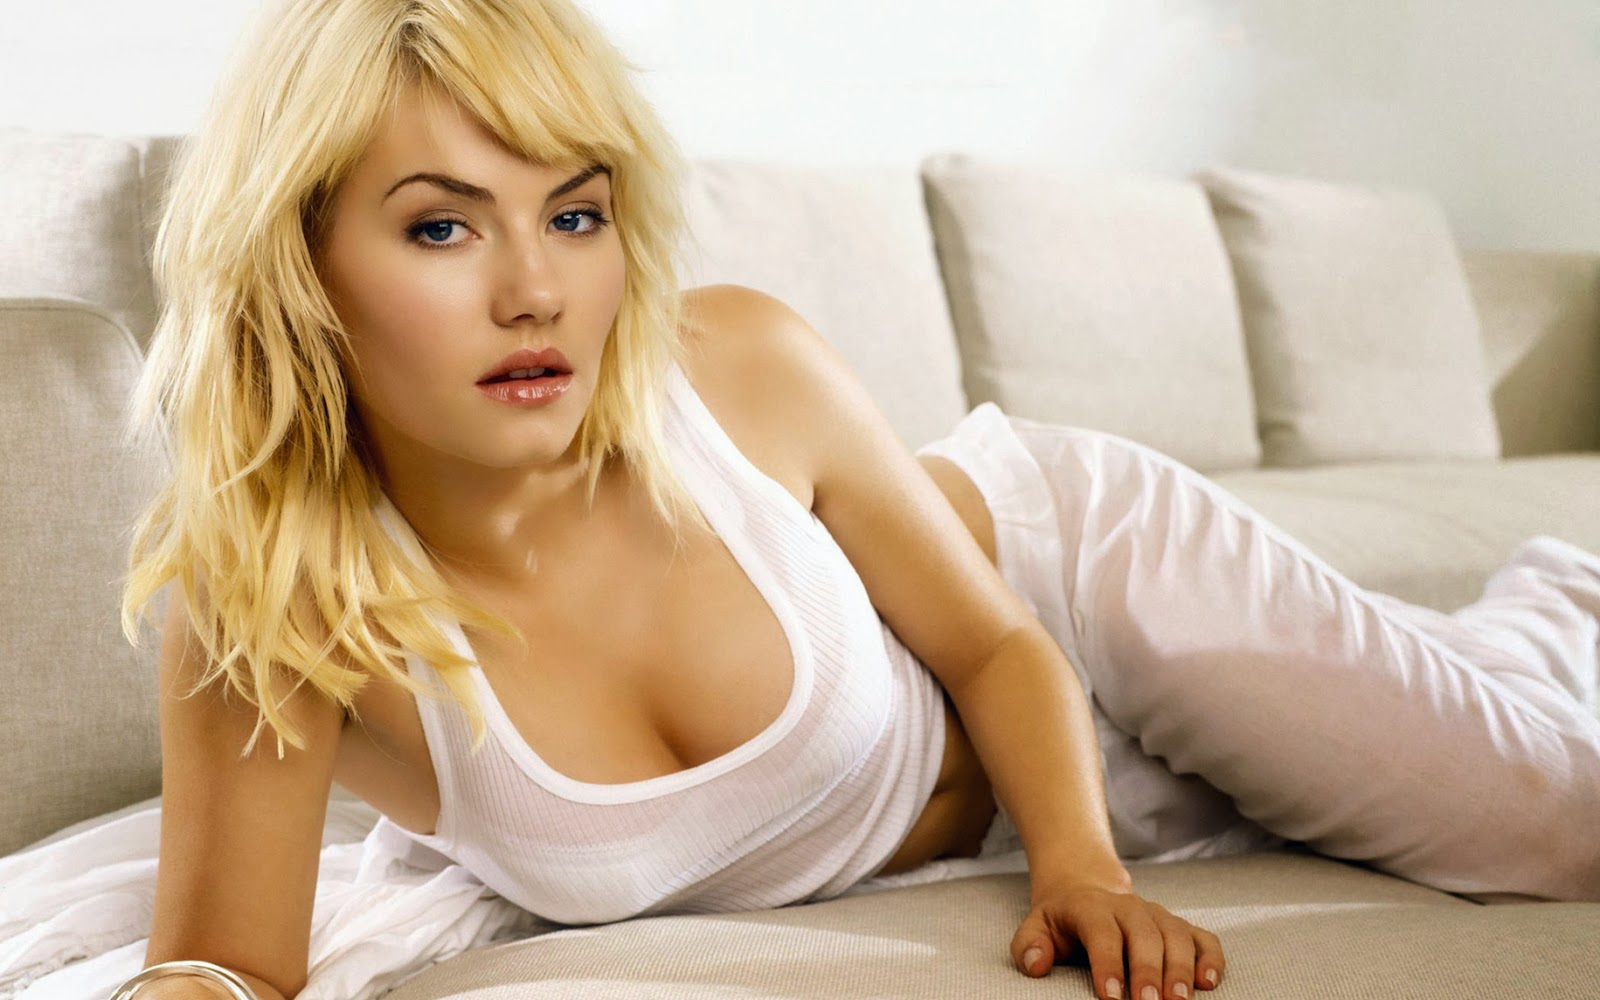 Elisha cuthbert girl next door mmmmmm 7